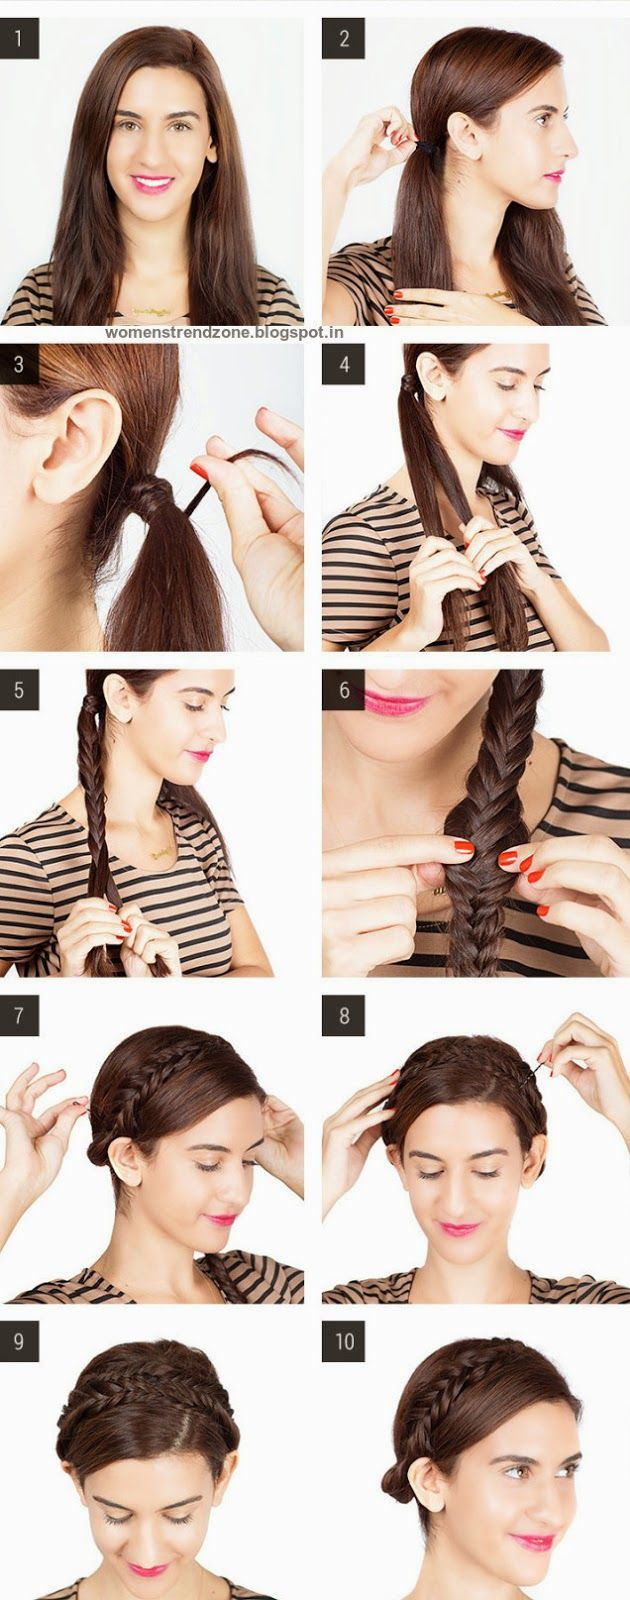 Step by step easy hairstyles instruction for longmediumshort hair